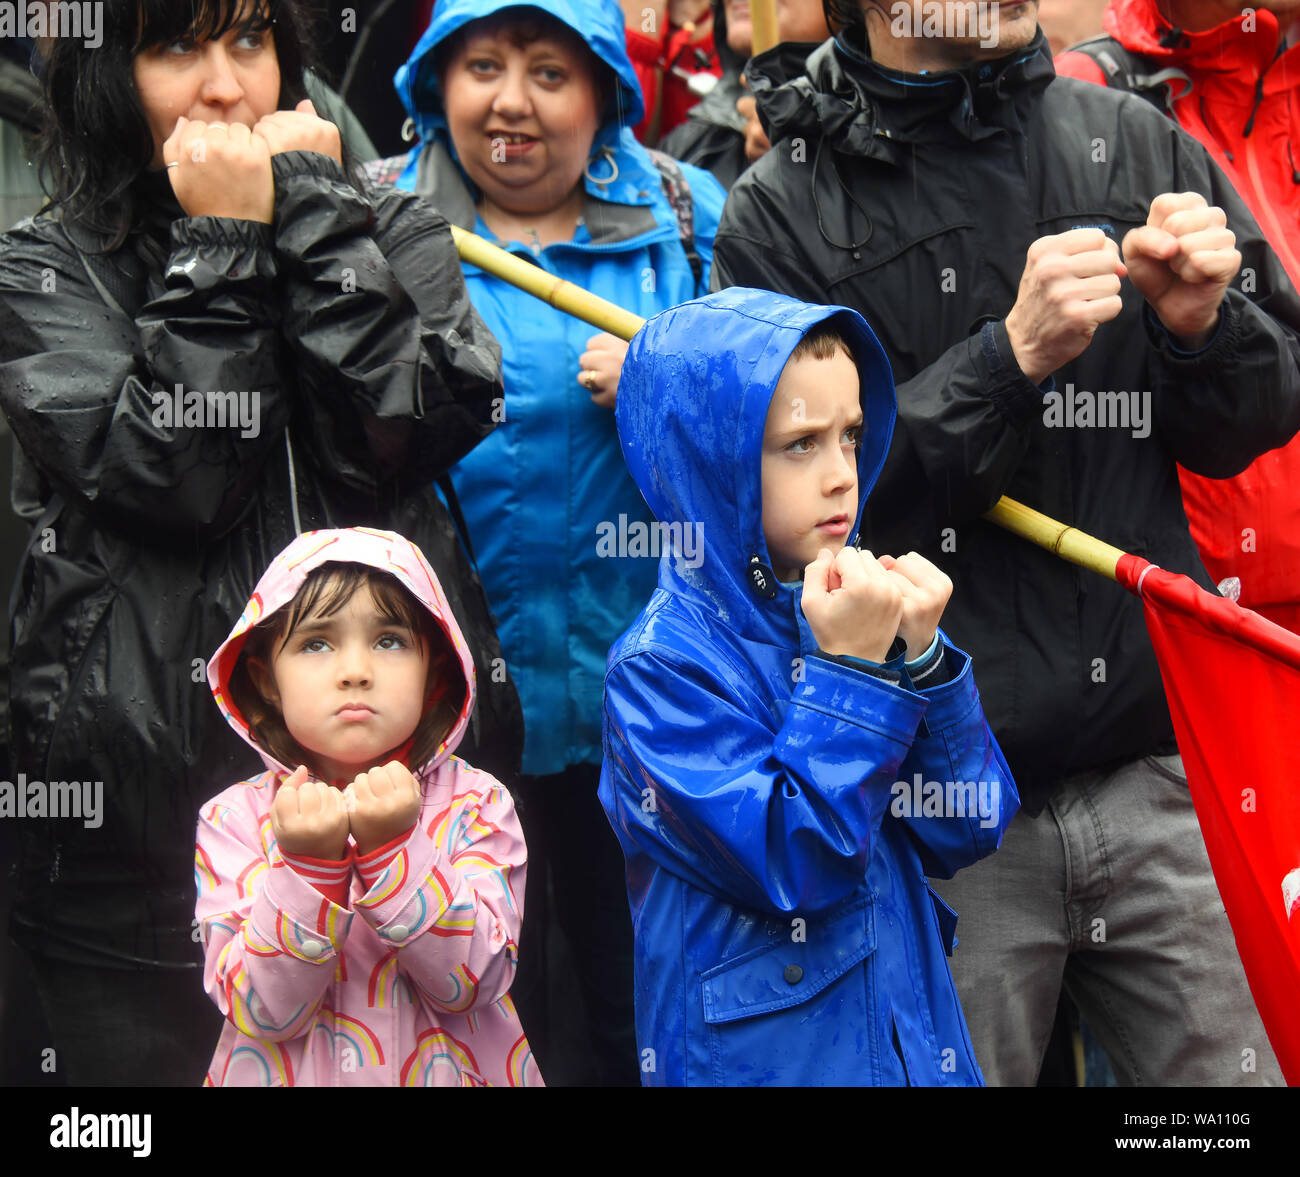 Manchester., UK. 16th Aug, 2019. Neneh aged 4 and brother Liam 8, show solidarity with the crowd at the Peterloo massacre memorial event at Manchester Central. © copyright Credit: Della Batchelor/Alamy Live News Stock Photo